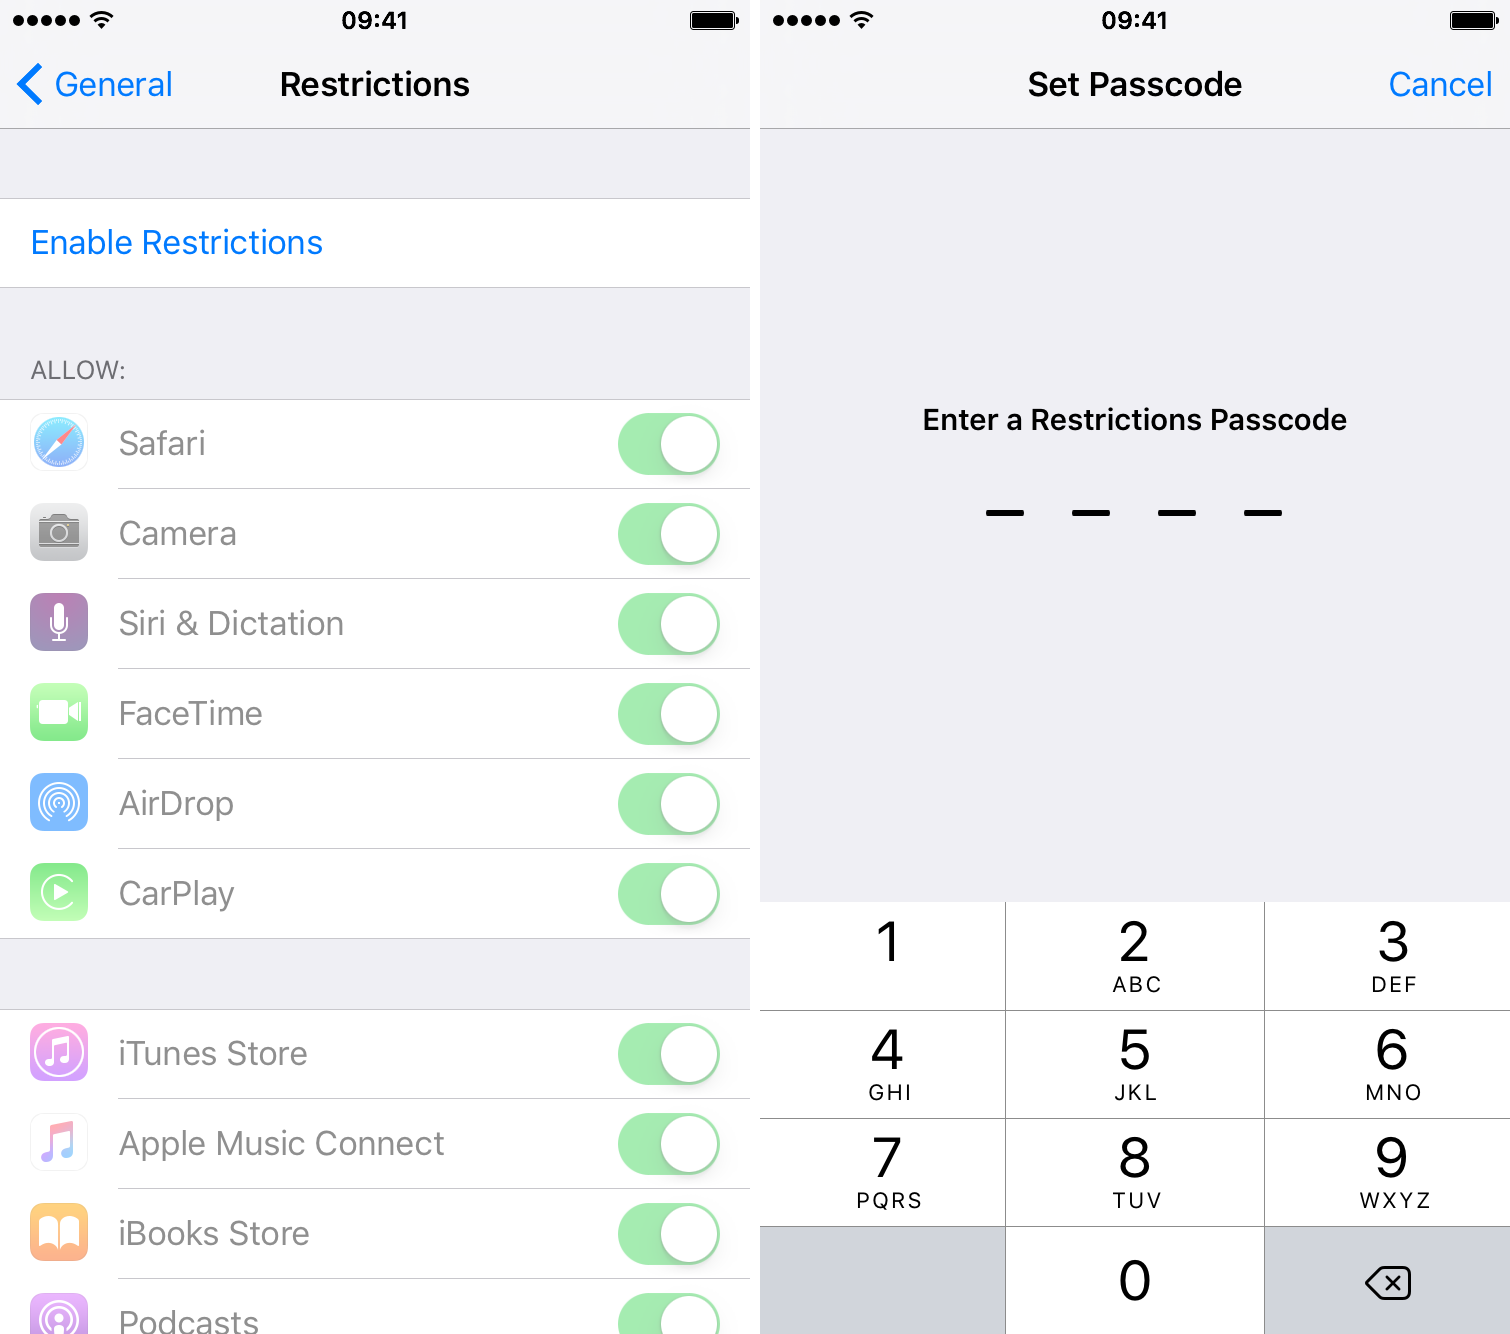 How to set restrictions on iphone